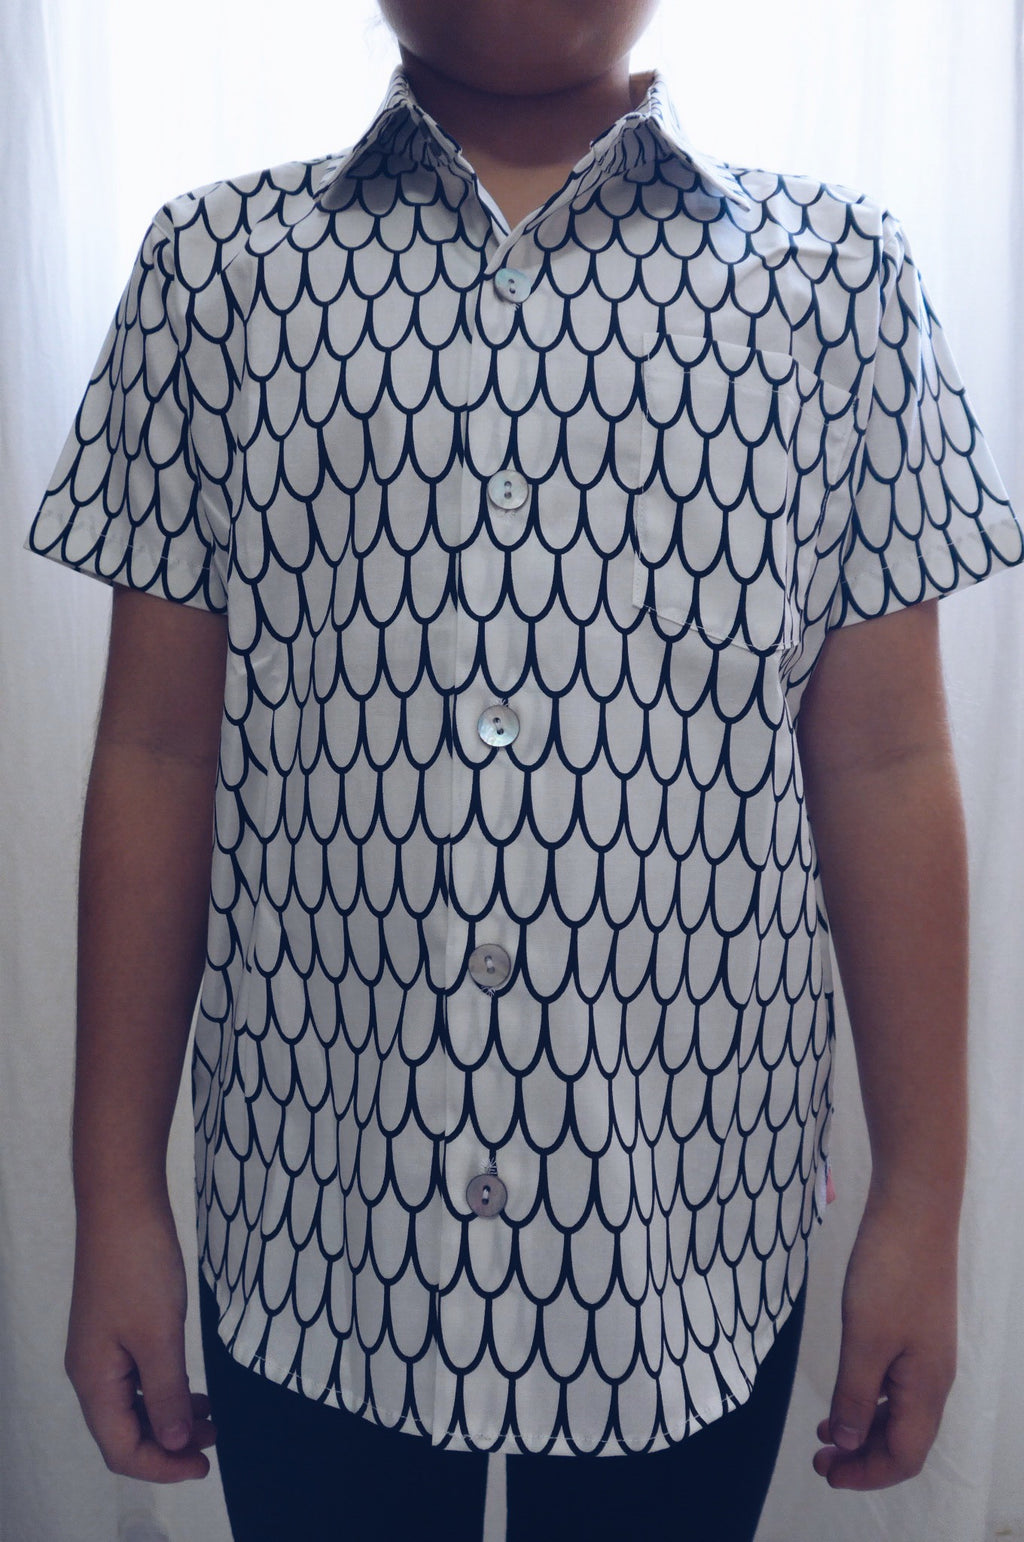 Scallop Swirls Shirt (LAST PIECE IN 5T)